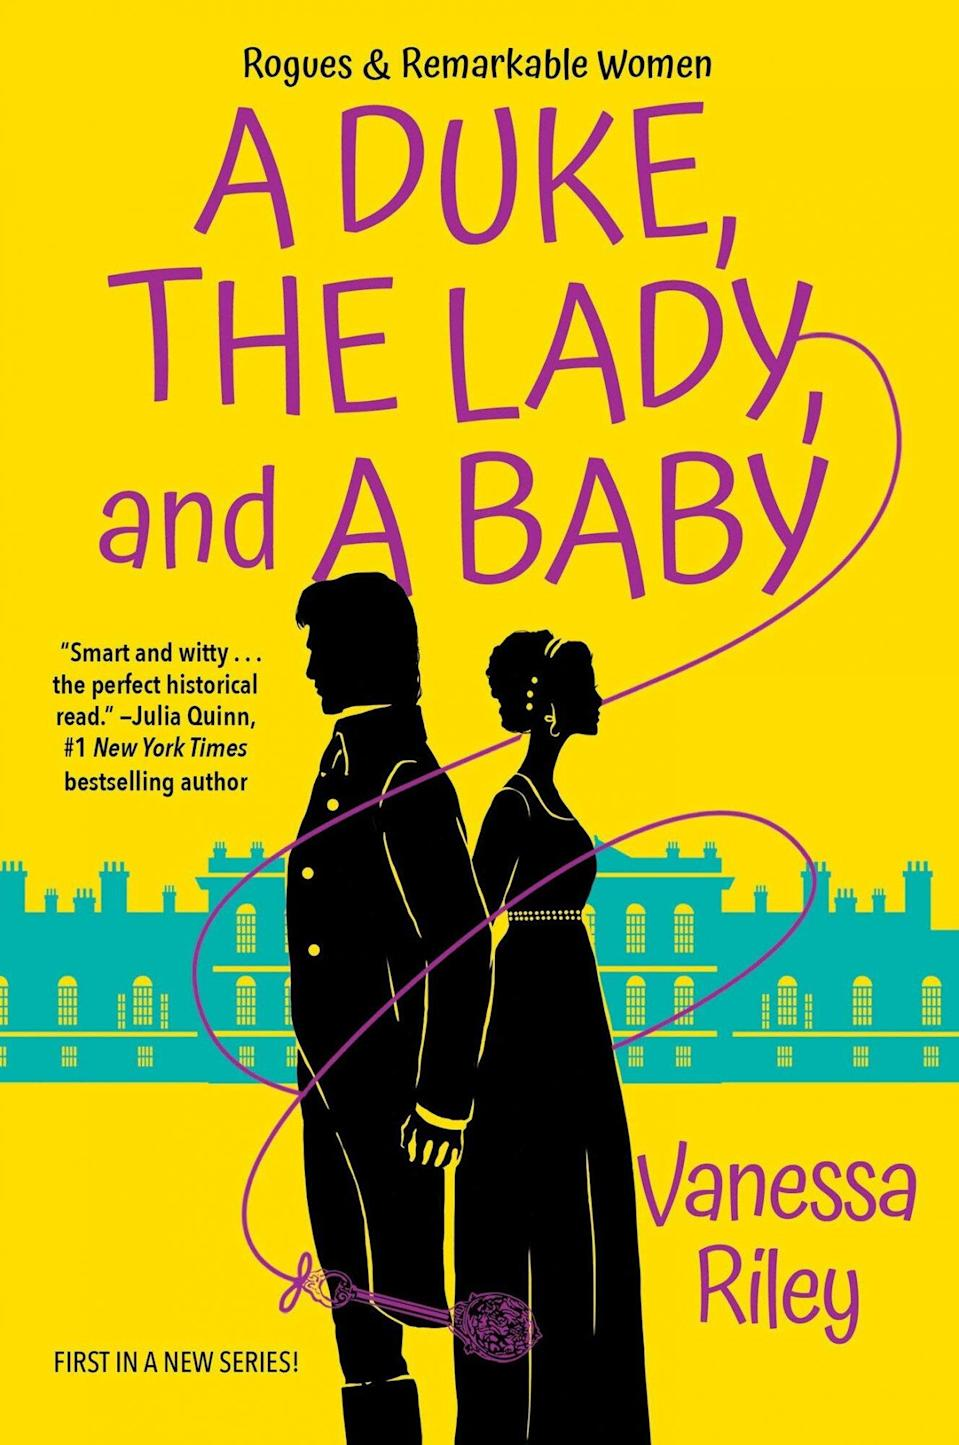 A Duke, the Lady, and a Baby by Vanessa Riley